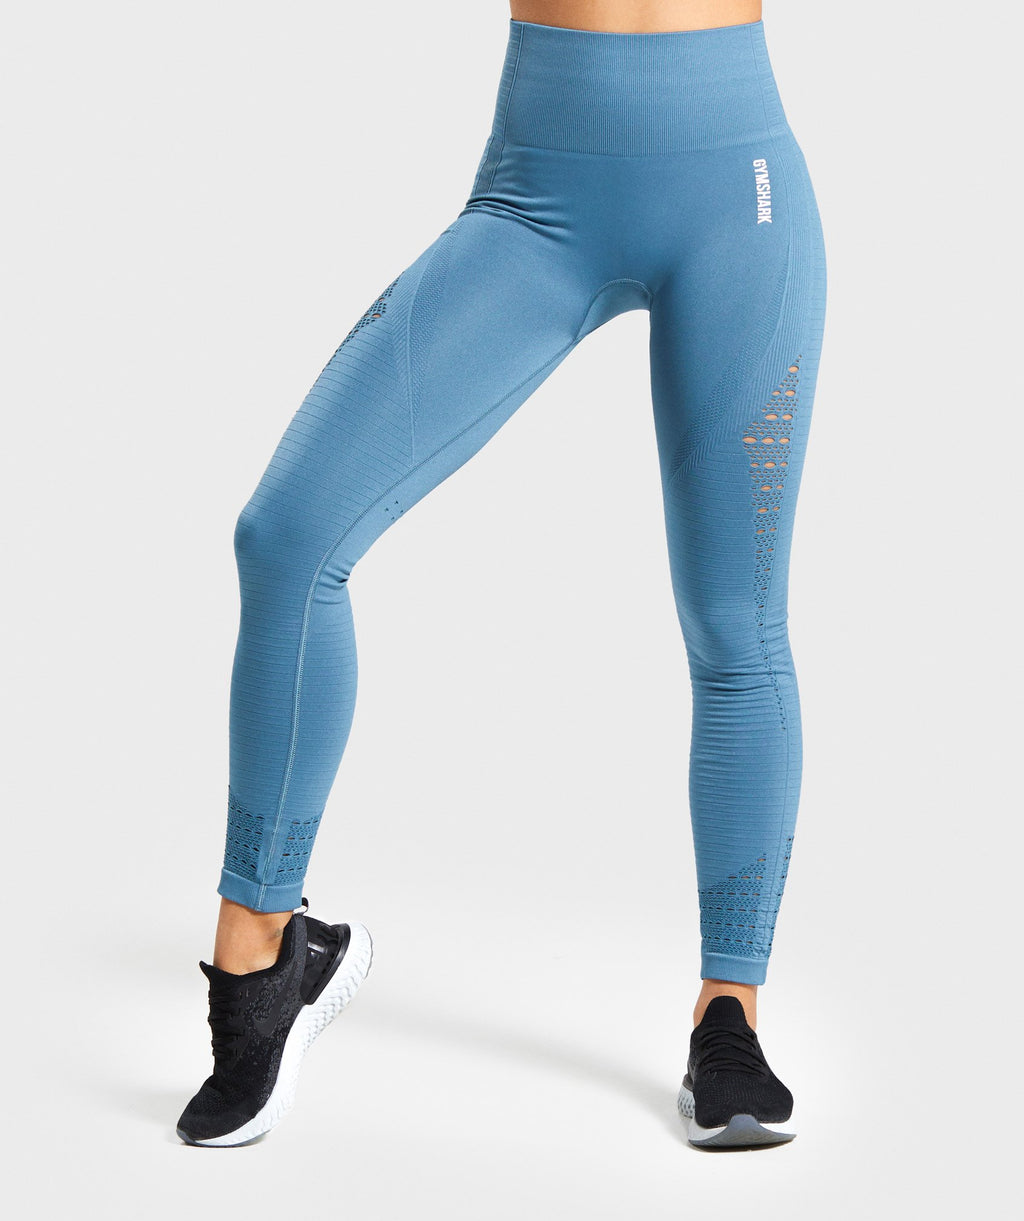 GYMSHARK WOMENS ENERGY+ SEAMLESS CROPPED LEGGINGS